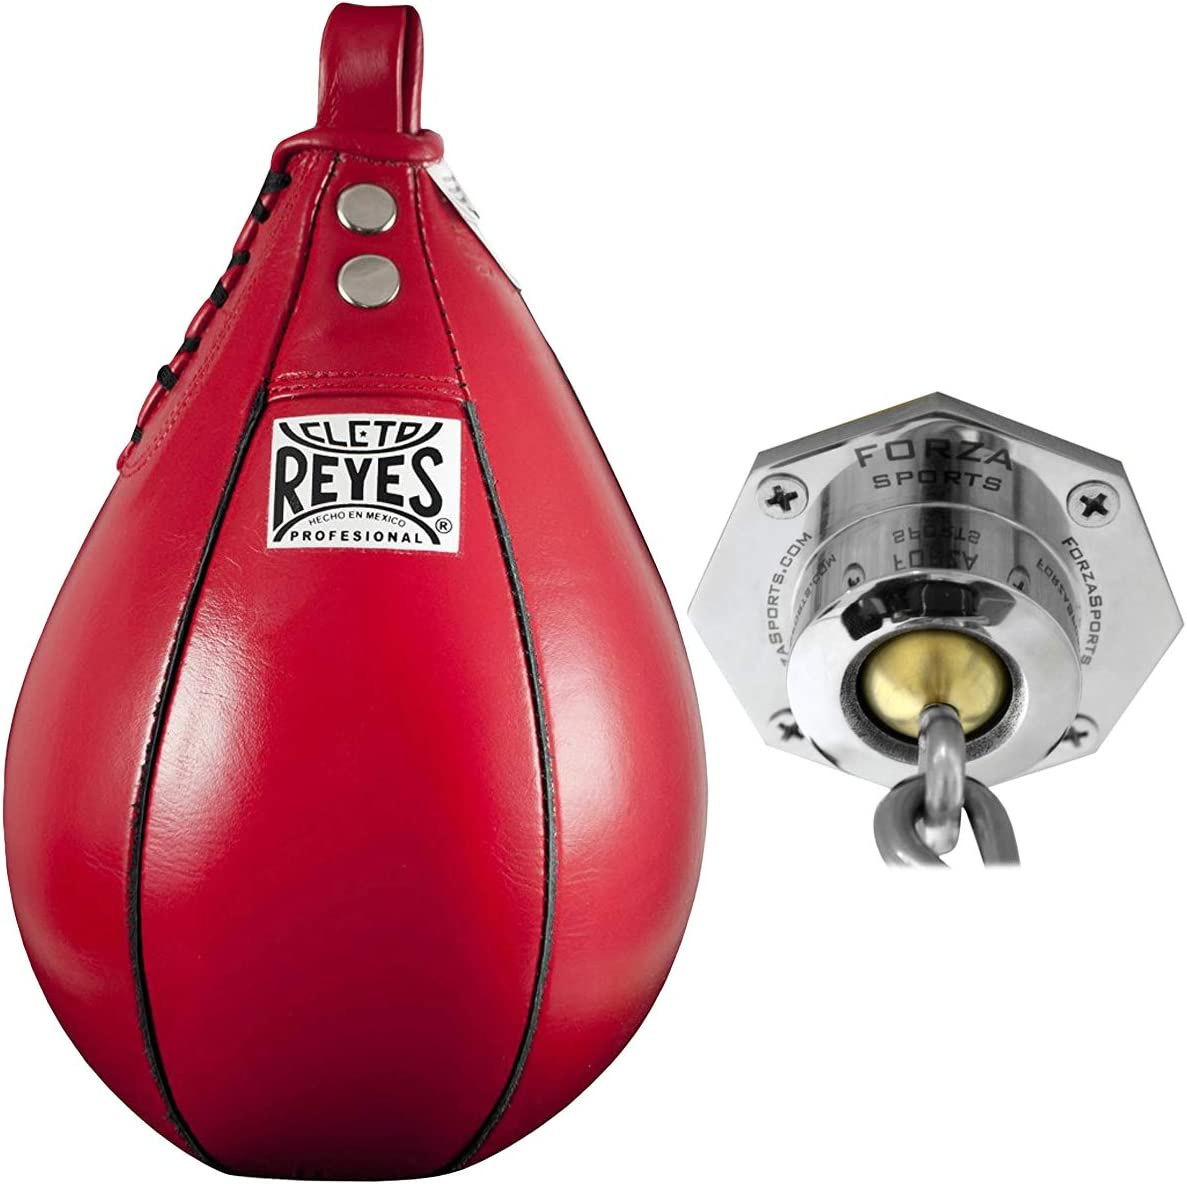 CLETO REYES Pro Speed Bag Kit Includes Bag and Forza Sports Evolution Swivel